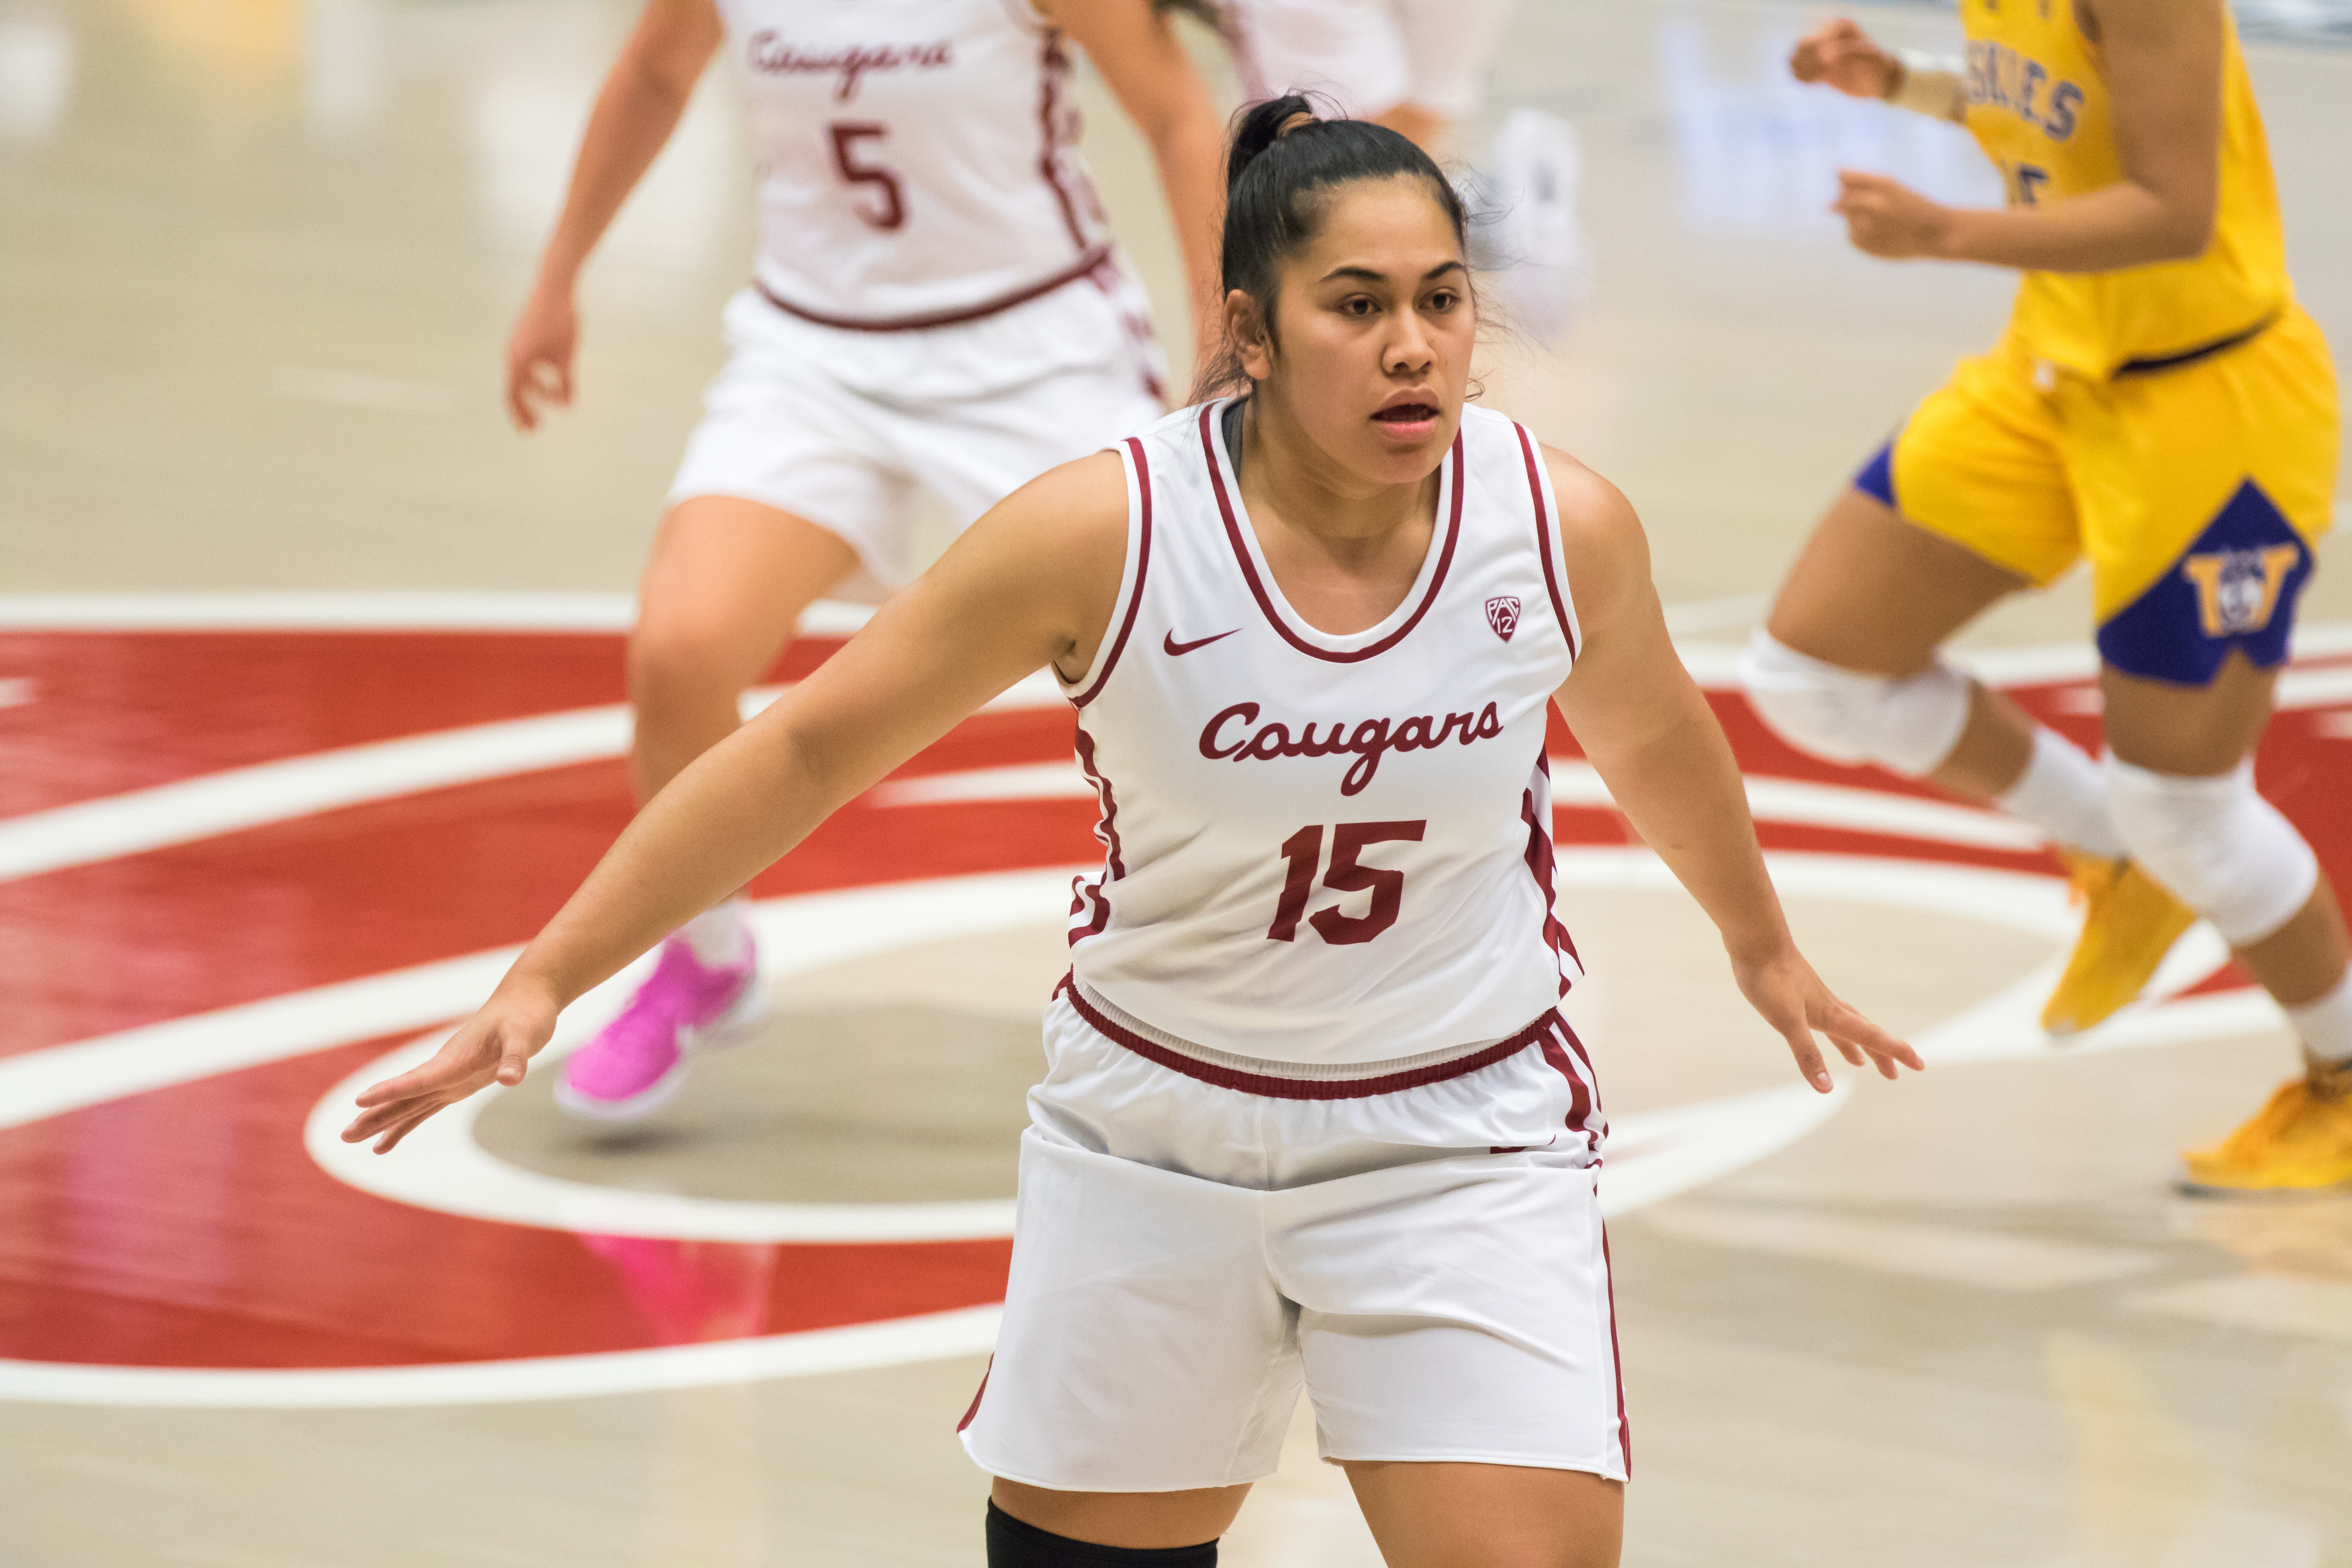 PULLMAN, WA - FEBRUARY 28: Washington State forward Ula Motuga (15) stares down a Washington player during the second half of a Boeing Apple Cup Series matchup between the Washington Huskies and the Washington State Cougars on February 28, 2021, at Beasley Coliseum in Pullman, WA.